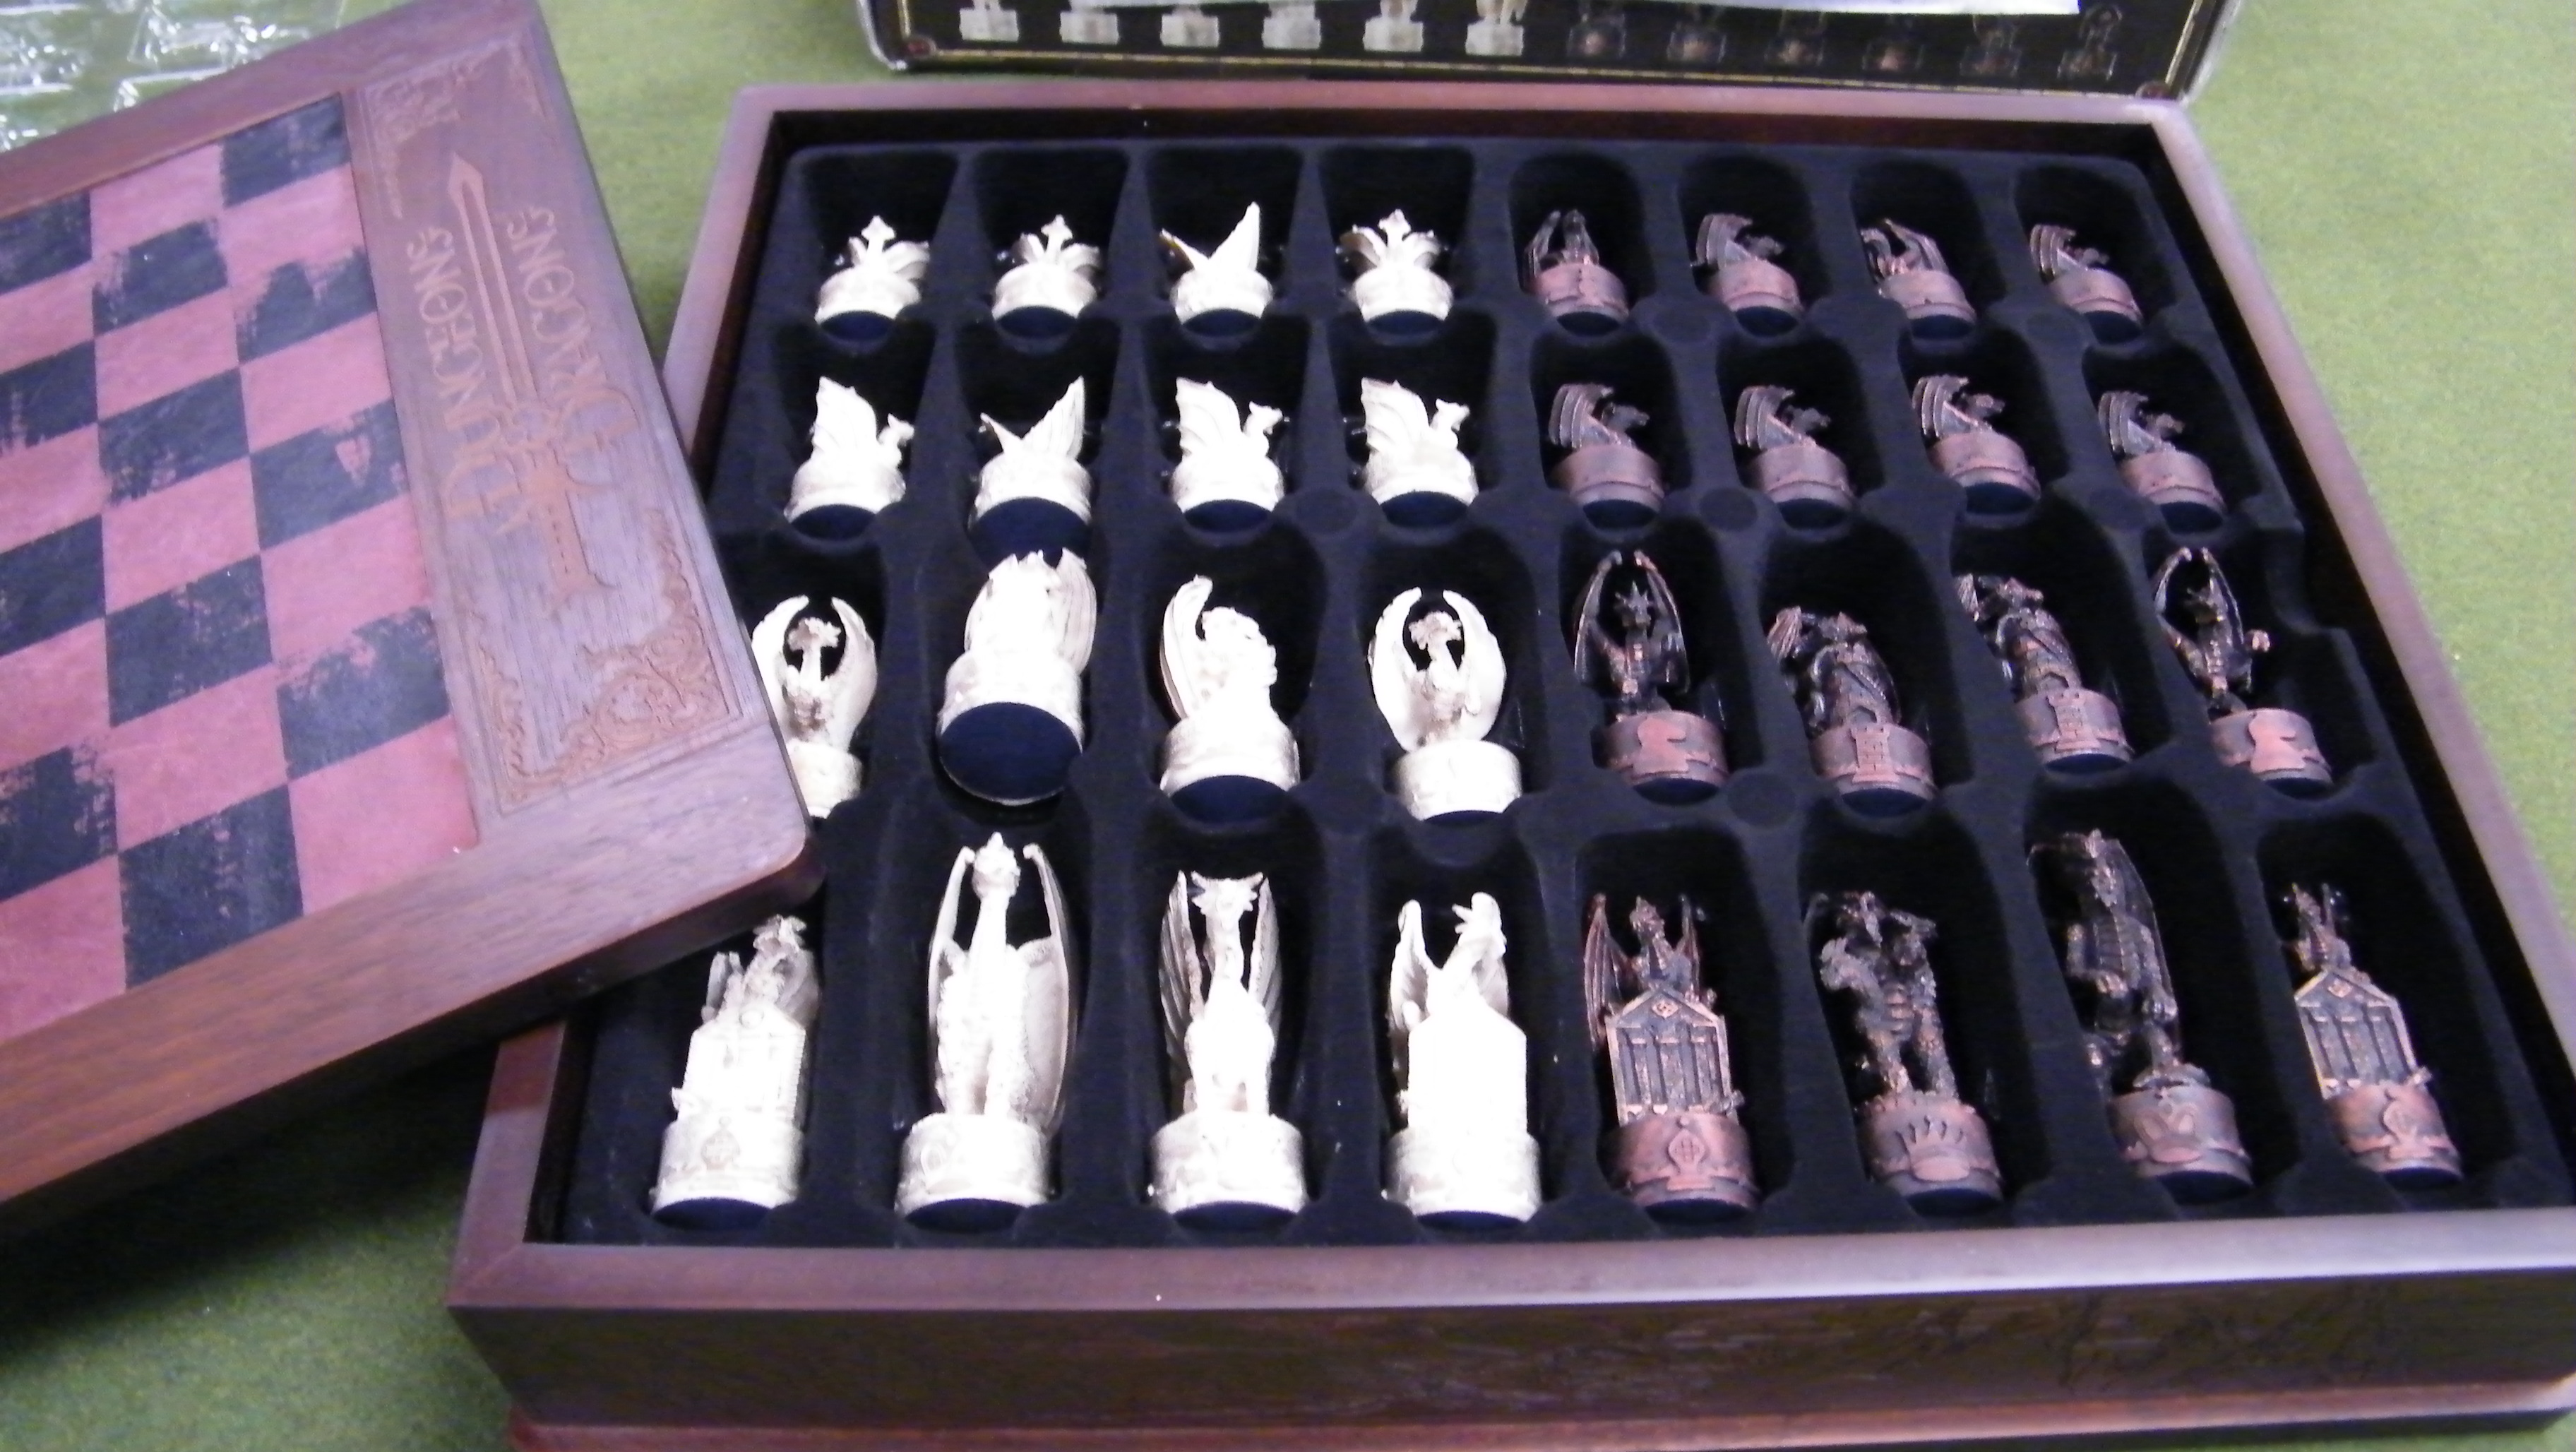 100 Coolest Chess Sets Chess Sets Wooden Chess Sets